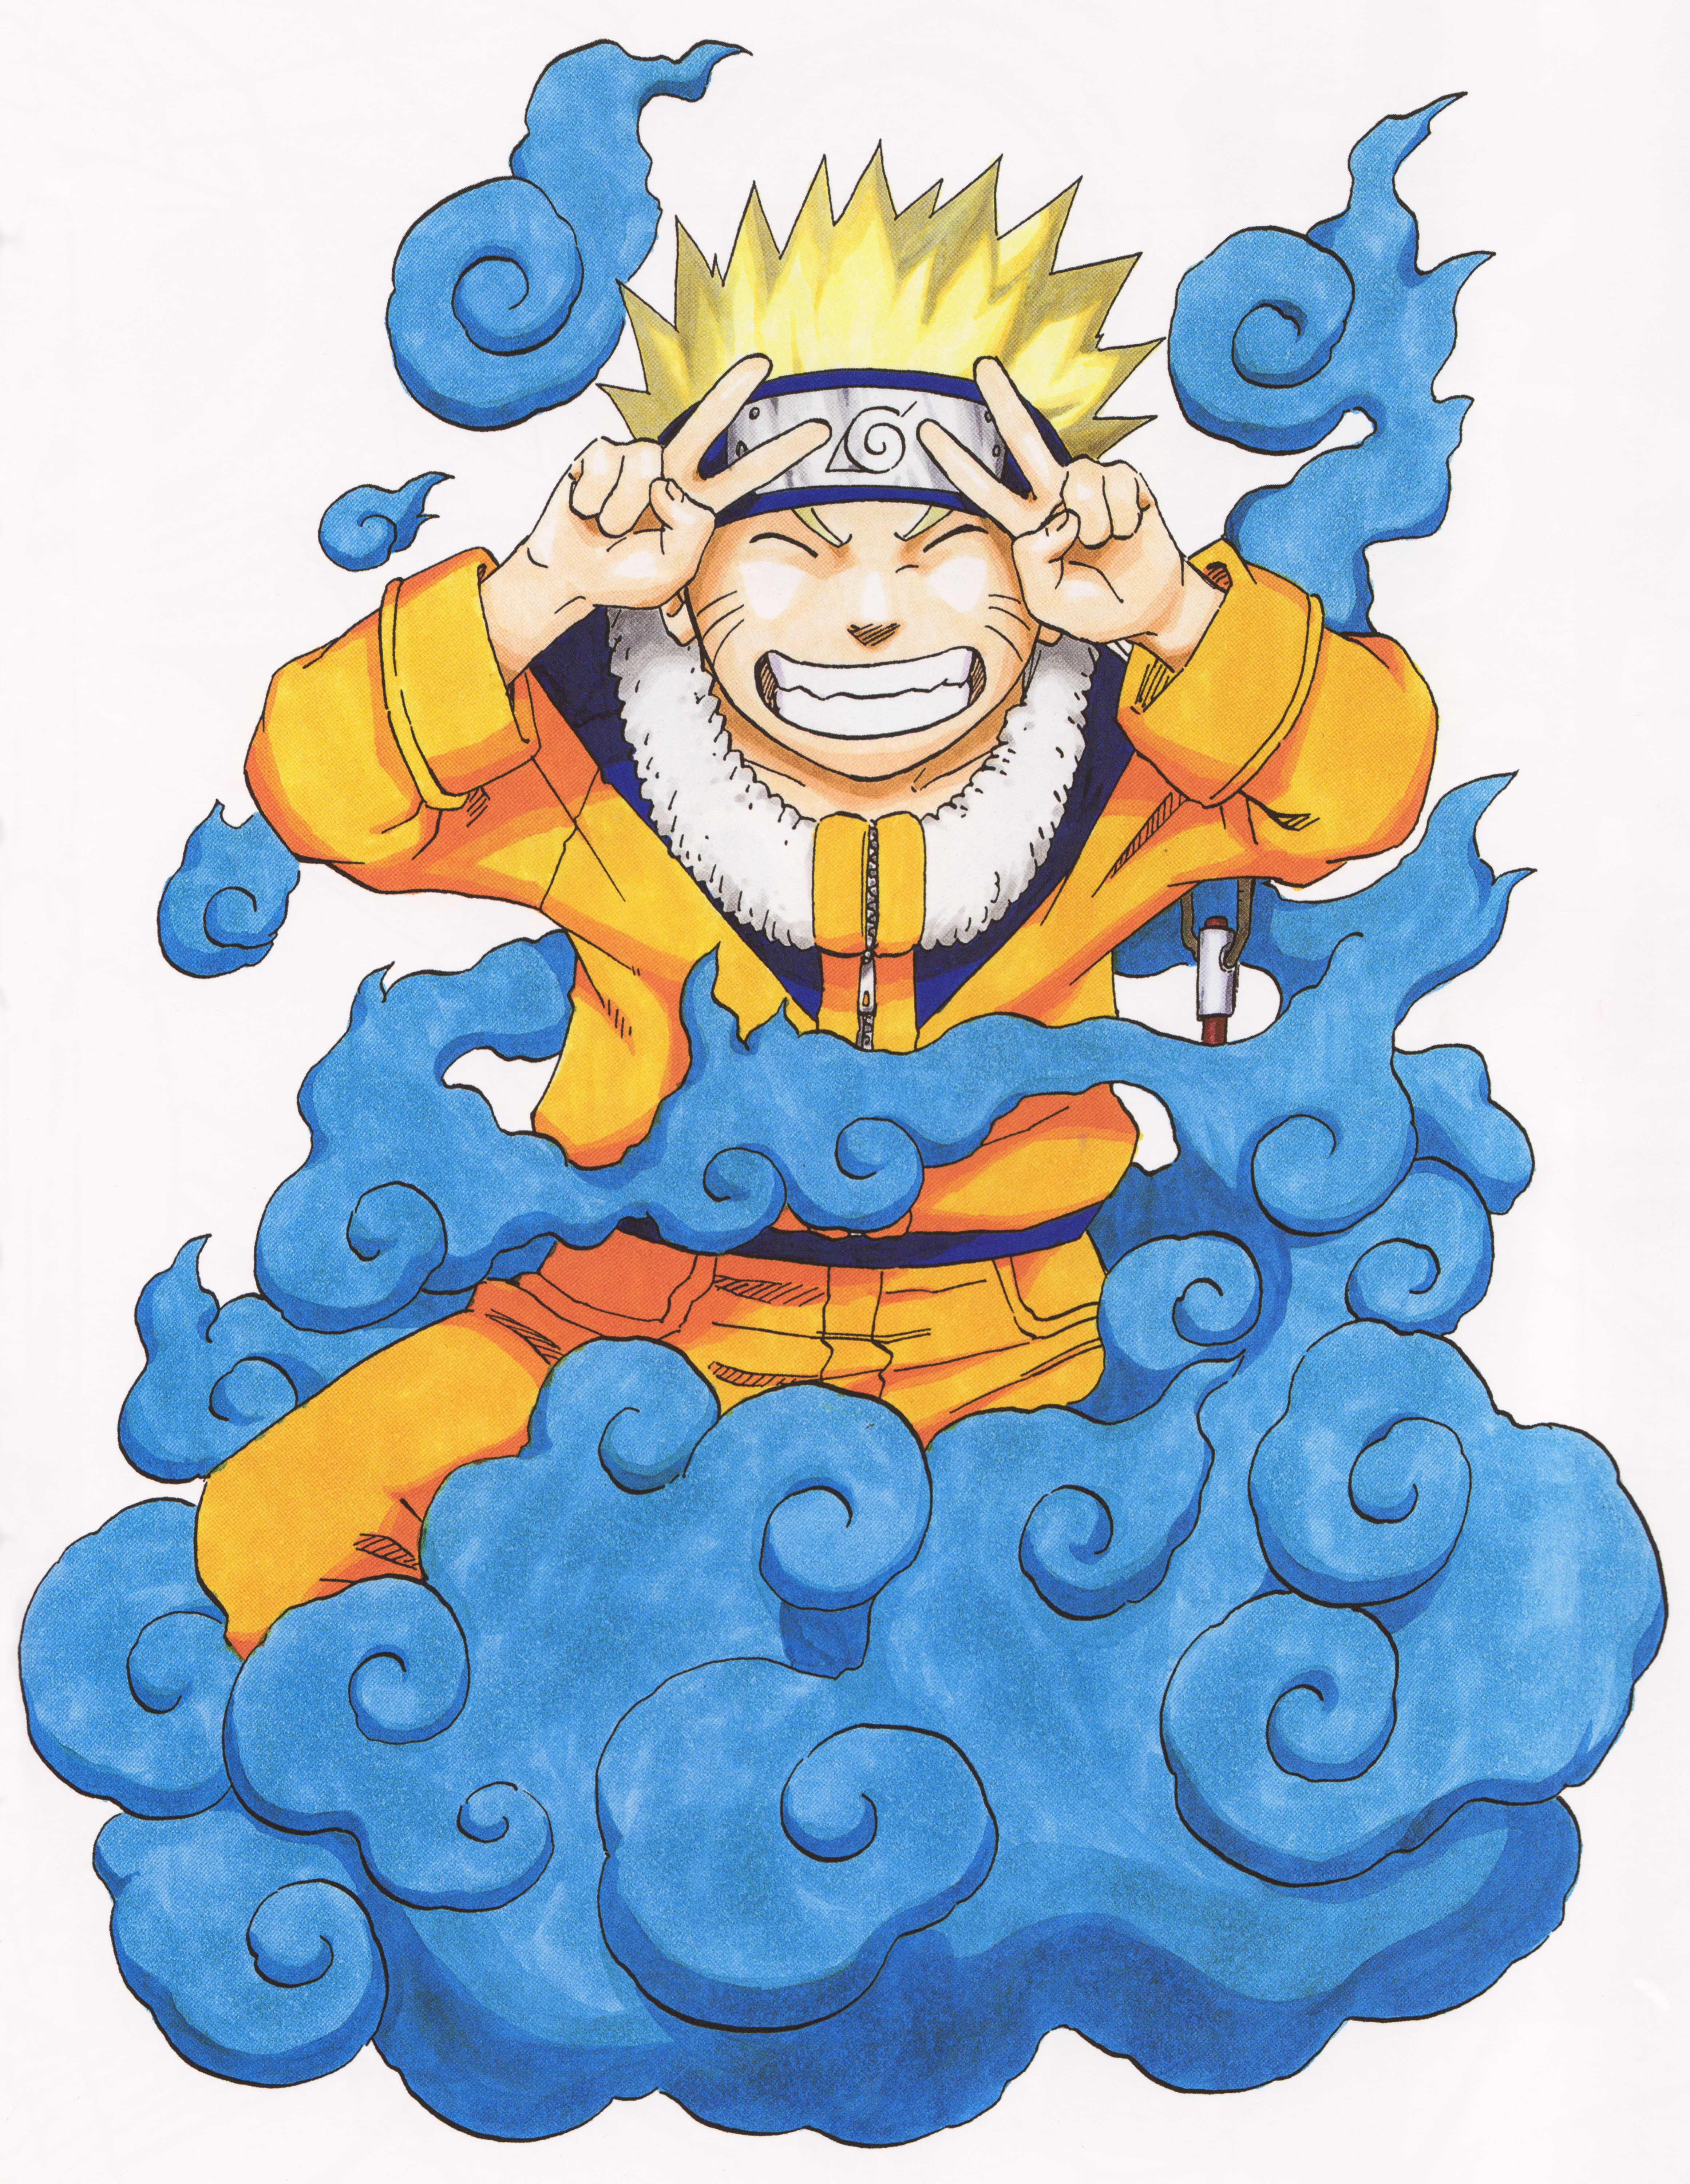 Naruto Happy in a Cloud of Blue Smoke